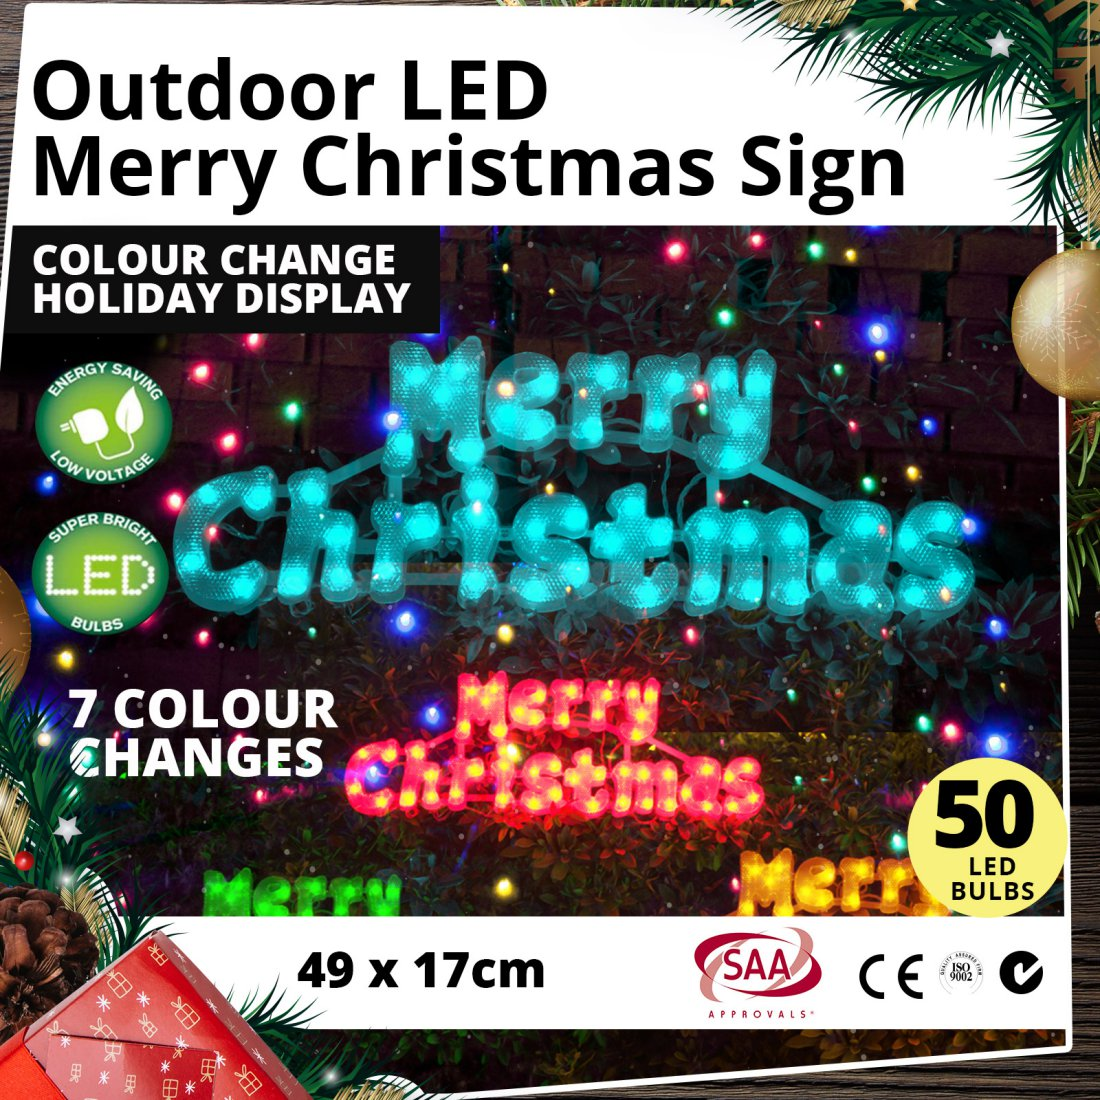 Outdoor LED Merry Christmas Sign Colour Change Holiday Display